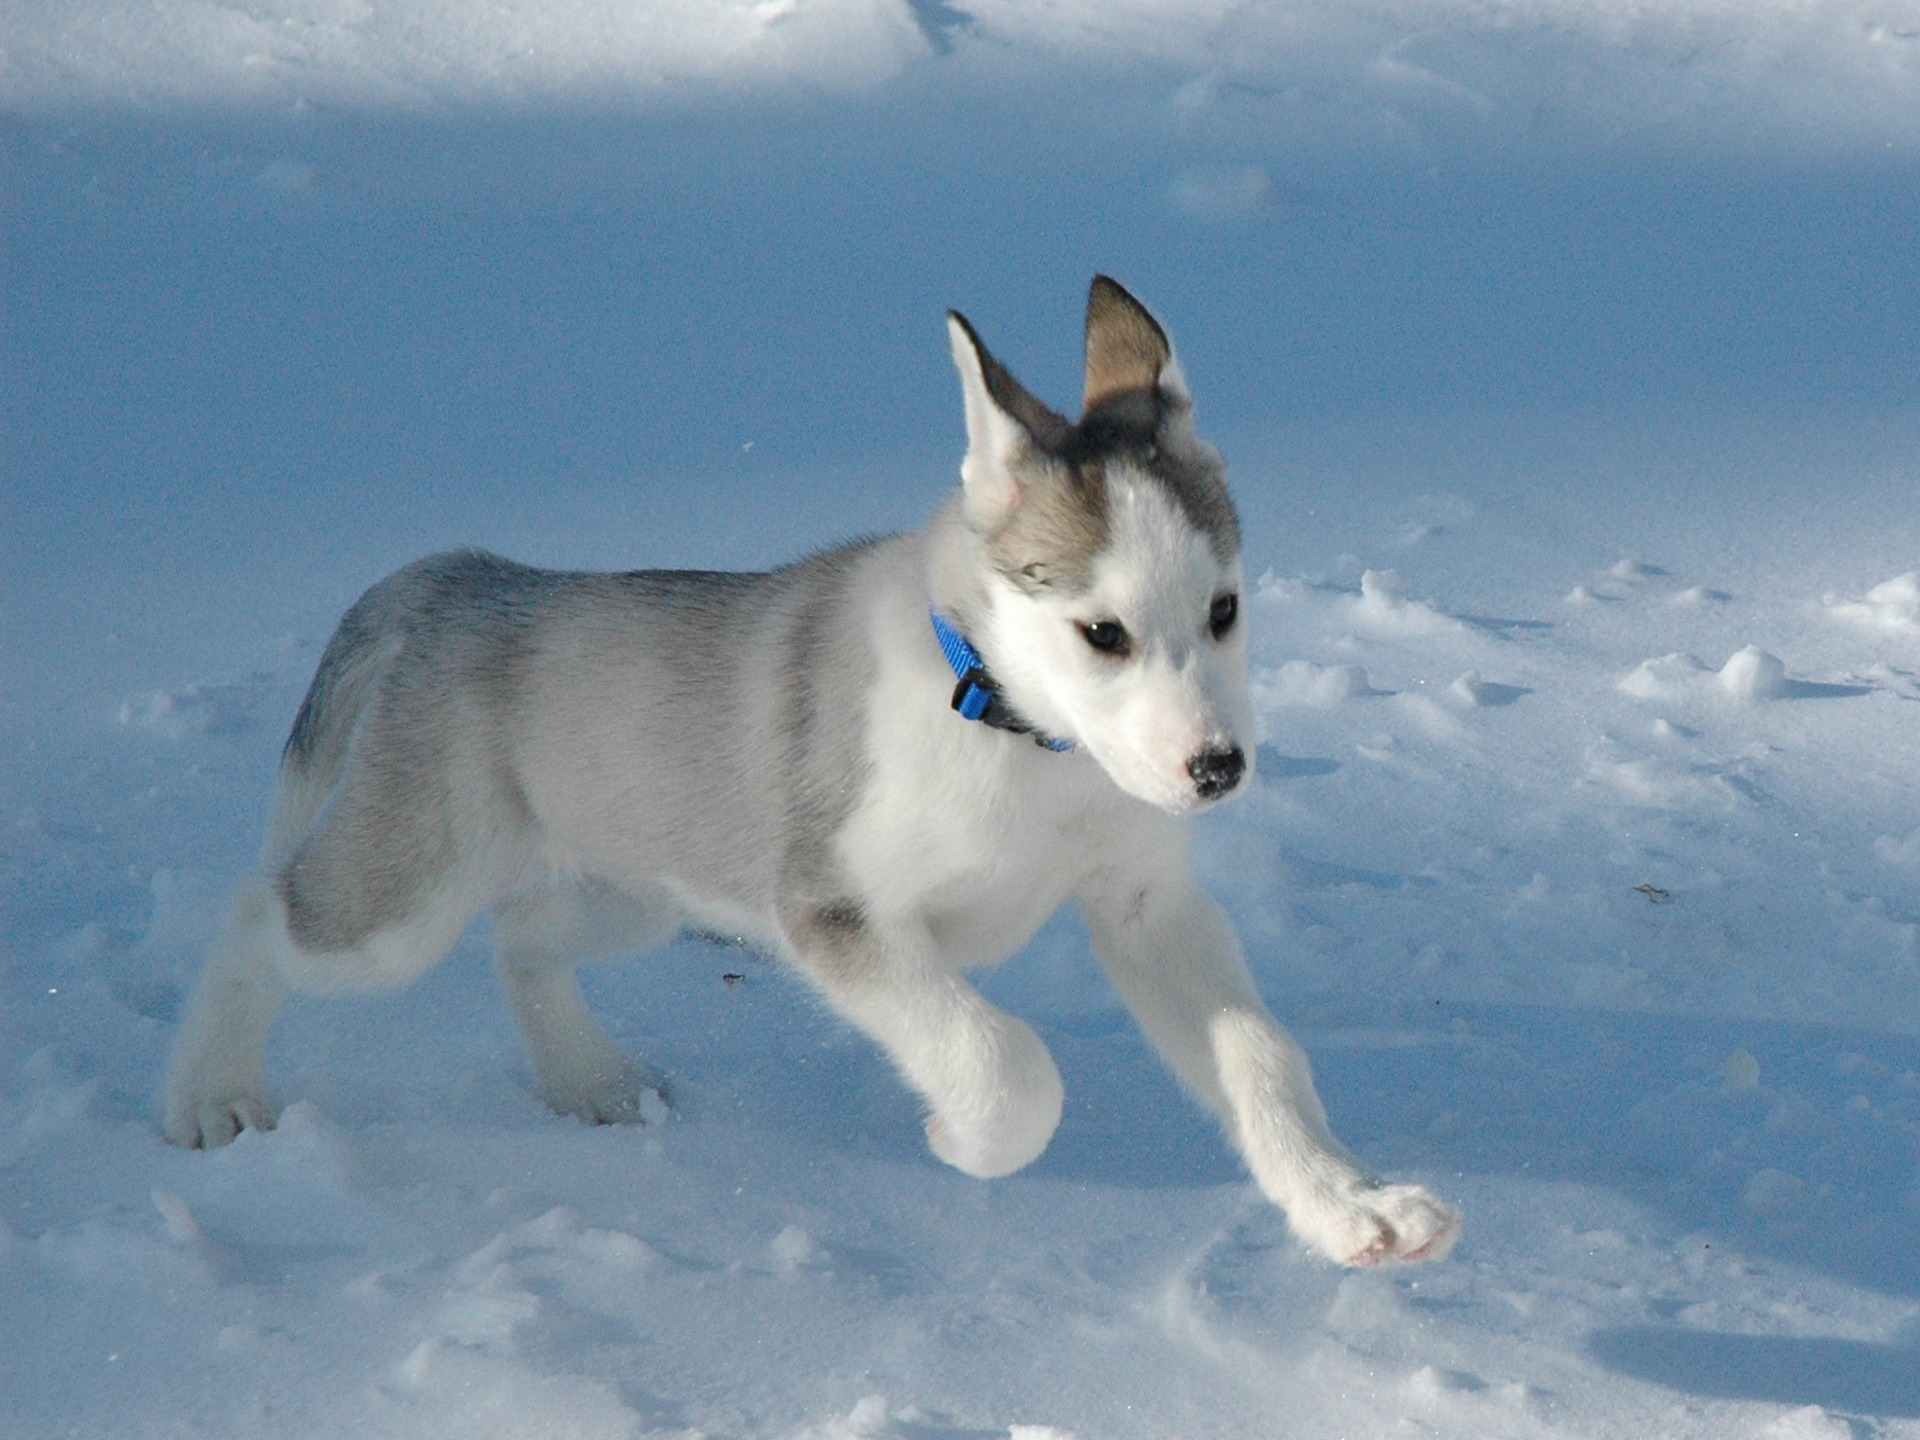 husky wallpaper dogs animals wallpapers in jpg format for free download